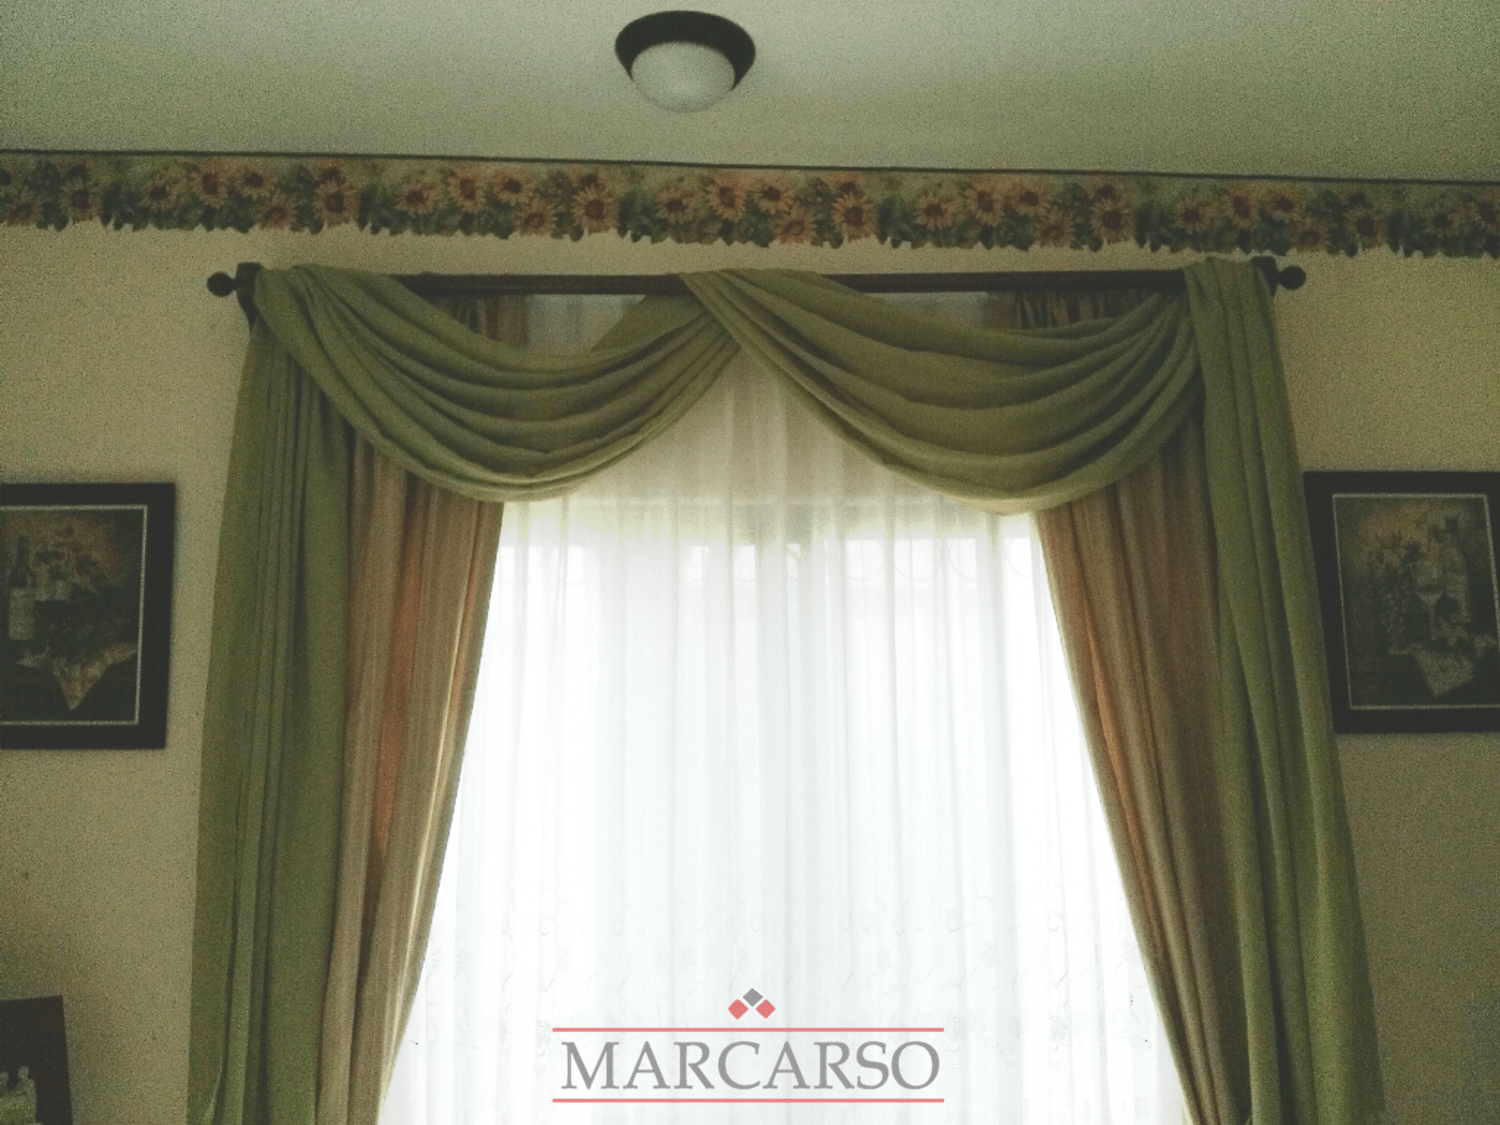 Cortinas Decoracion De Interiores Cortinas Y Persianas Marcarso Decoración De Interiores